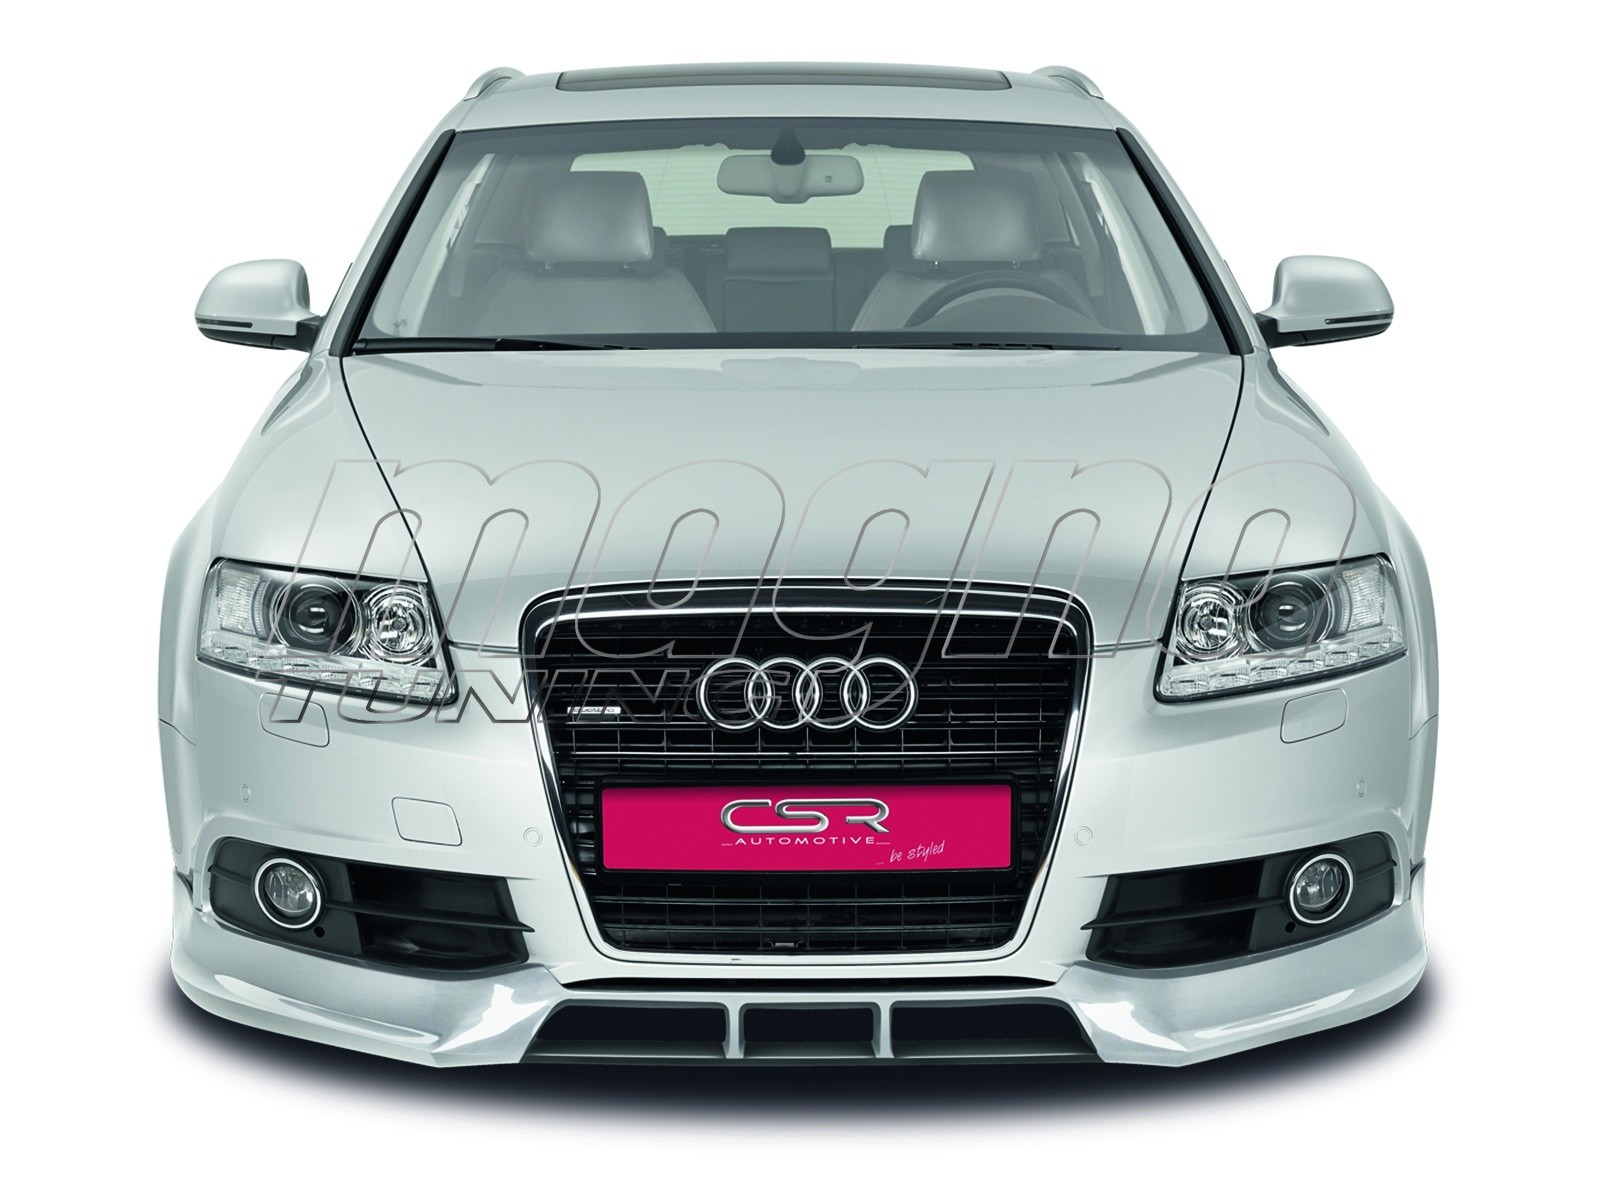 Audi a6 c6 4f facelift cx front bumper extension for Audi a6 4f interieur